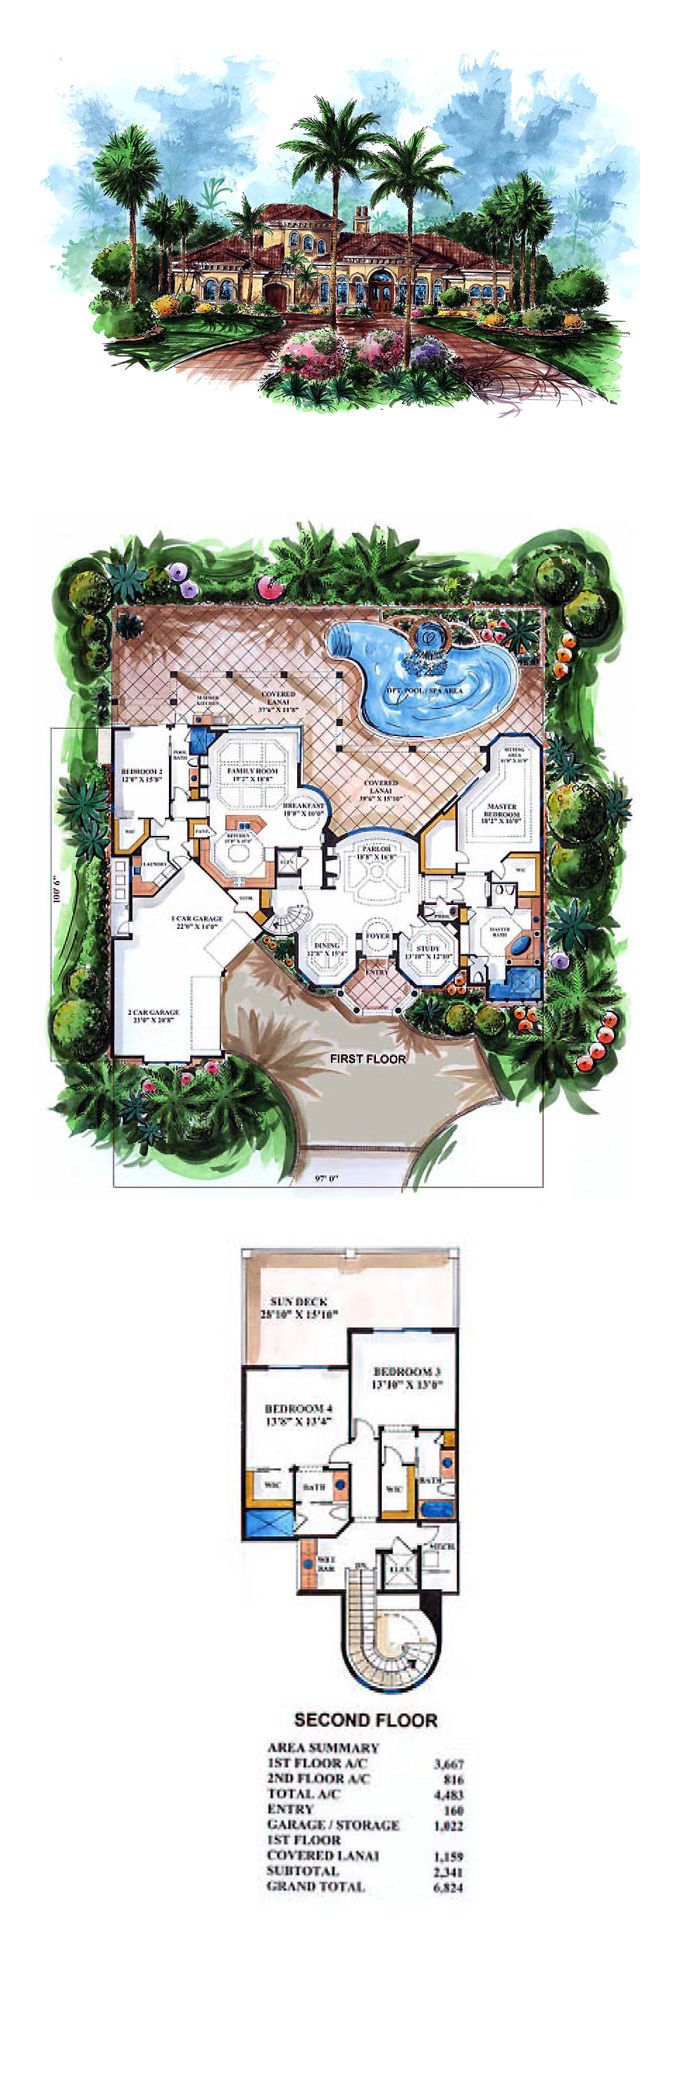 the 25 best cool house plans ideas on pinterest cool house plan id chp 23792 total living area 4483 sq